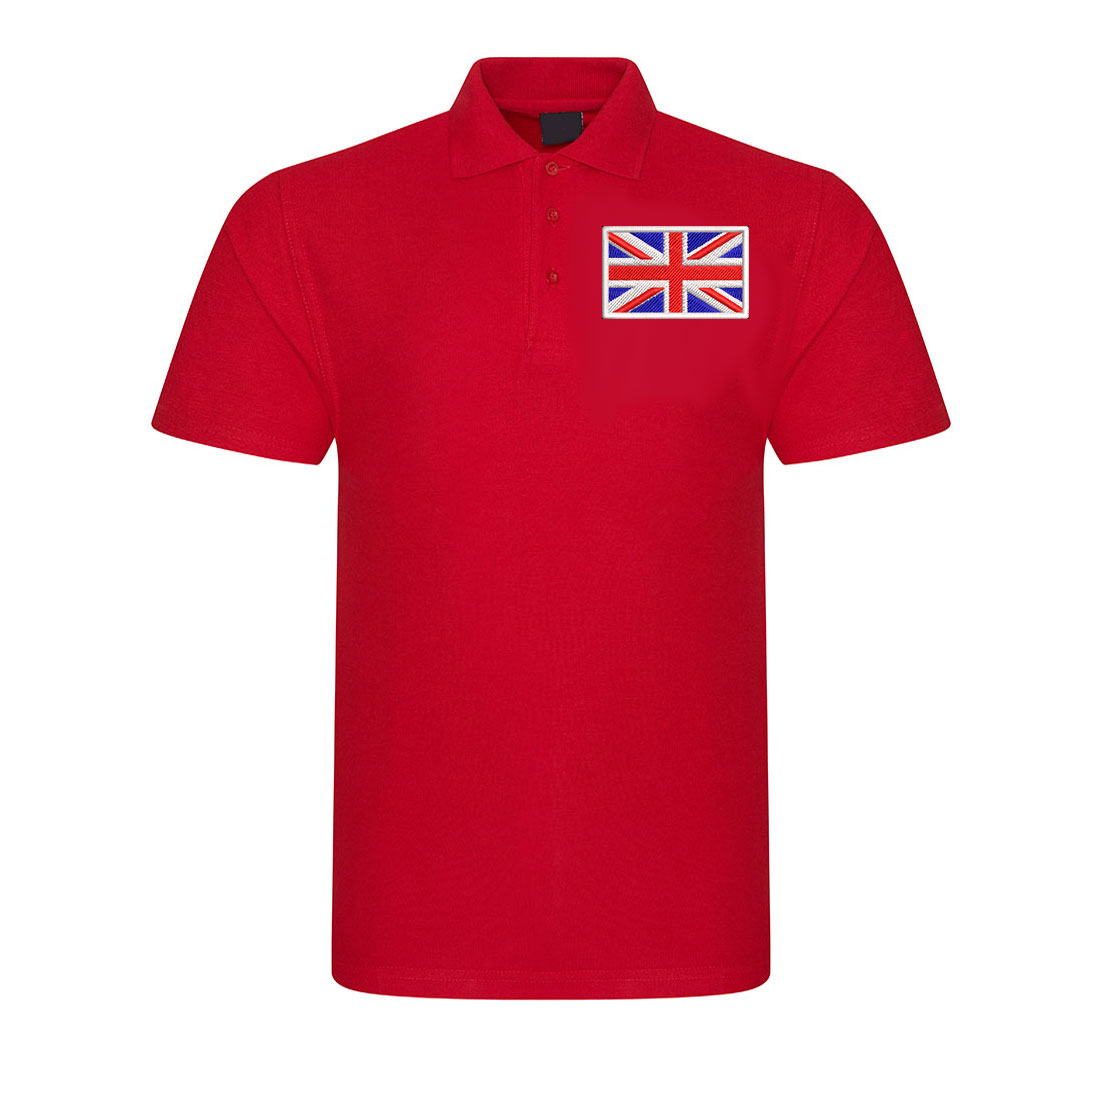 Embroidered Union Jack onto Unisex Polo Shirt